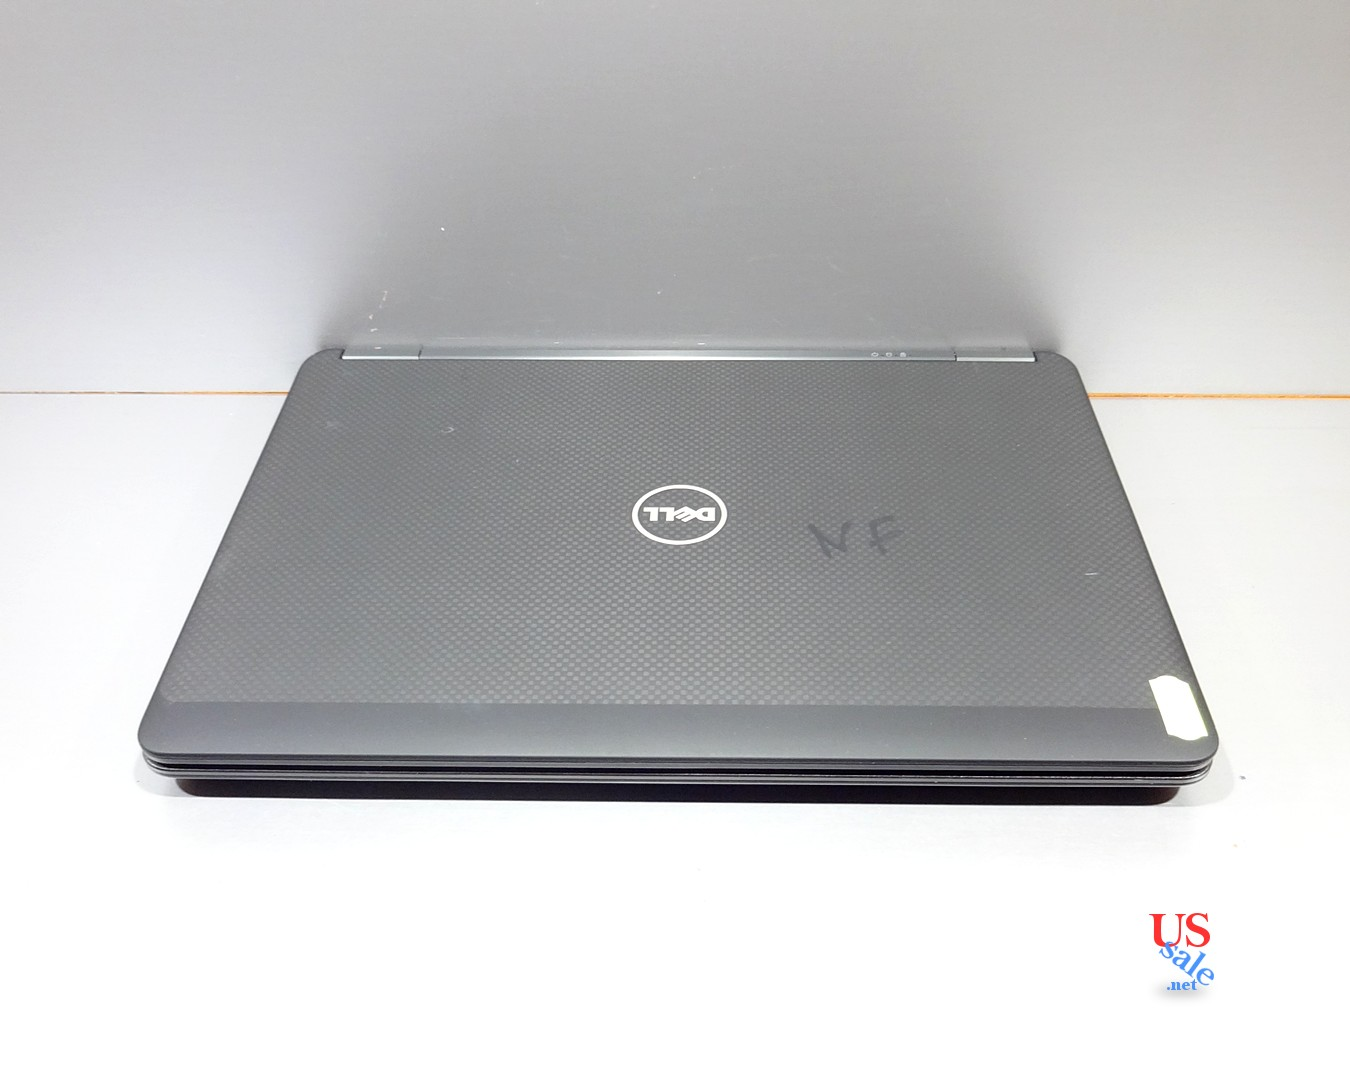 Toshiba-Satellite-C55-B5200-1300-real-3.jpg